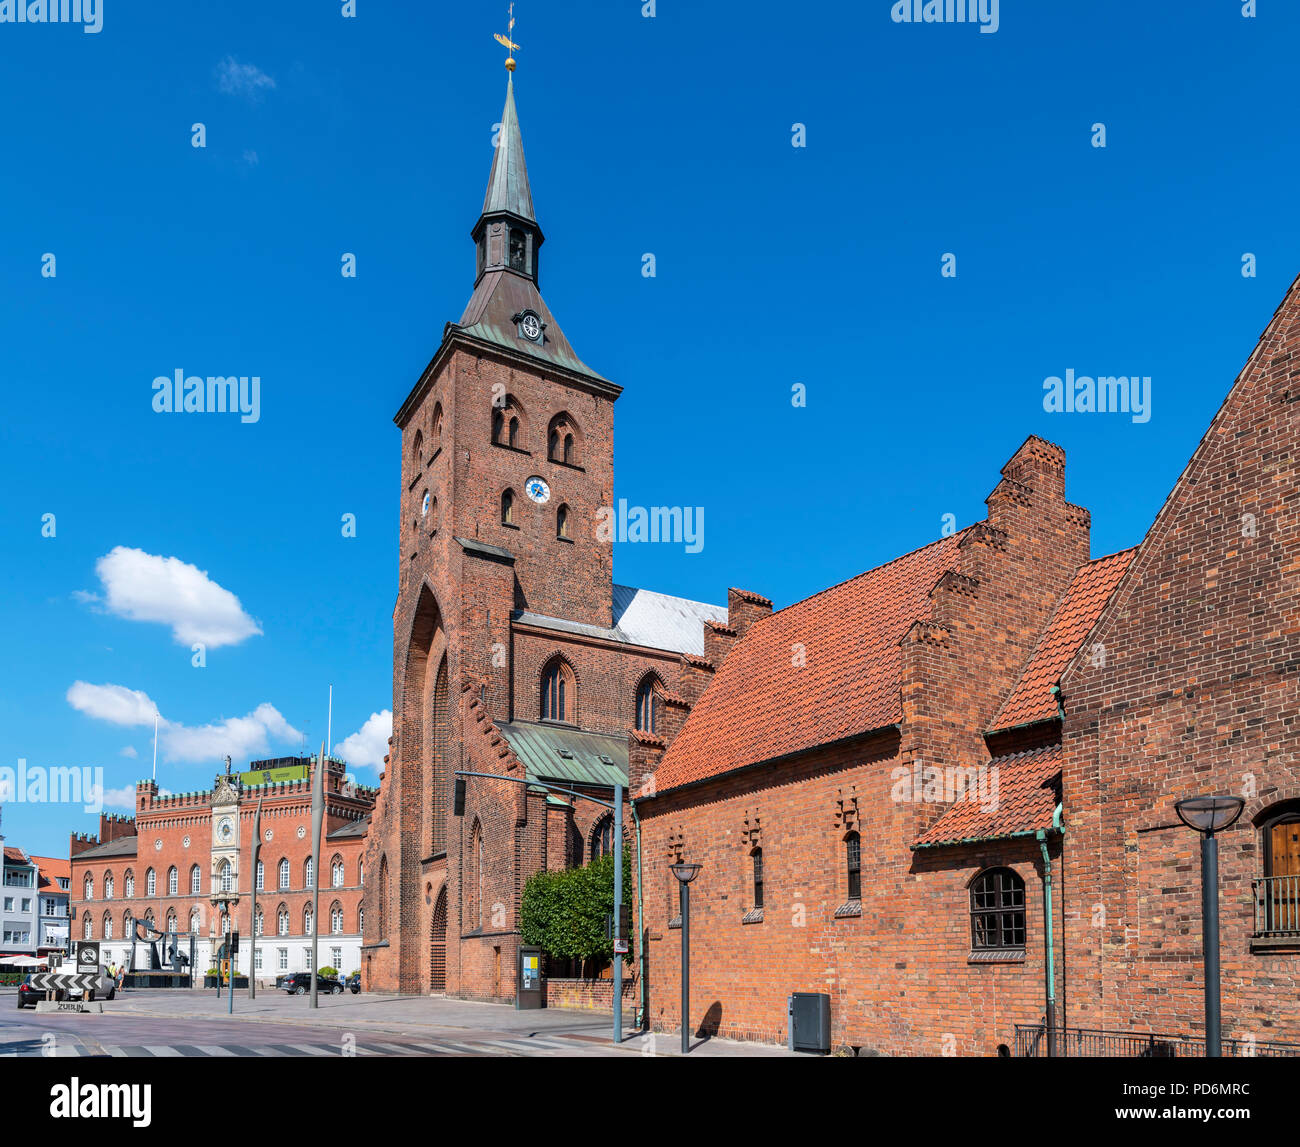 St Canute's Cathedral (Sankt Knuds Kirke) and City Hall (Rådhus), Odense, Funen, Denmark Stock Photo